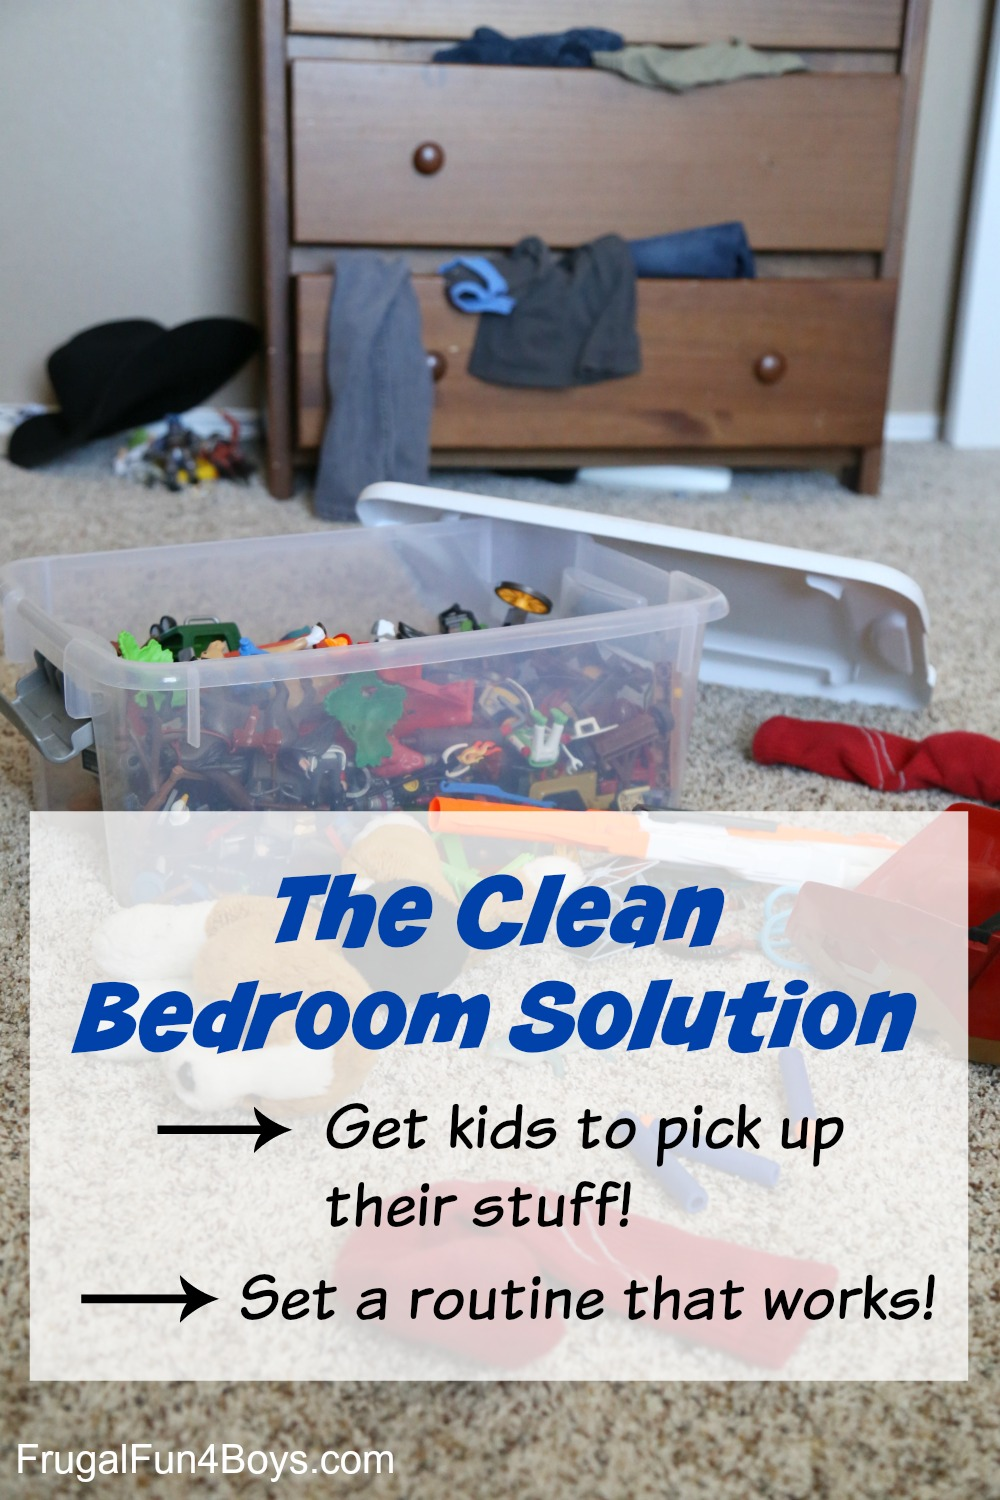 The Clean Bedroom Solution! Get kids to pick up their stuff!